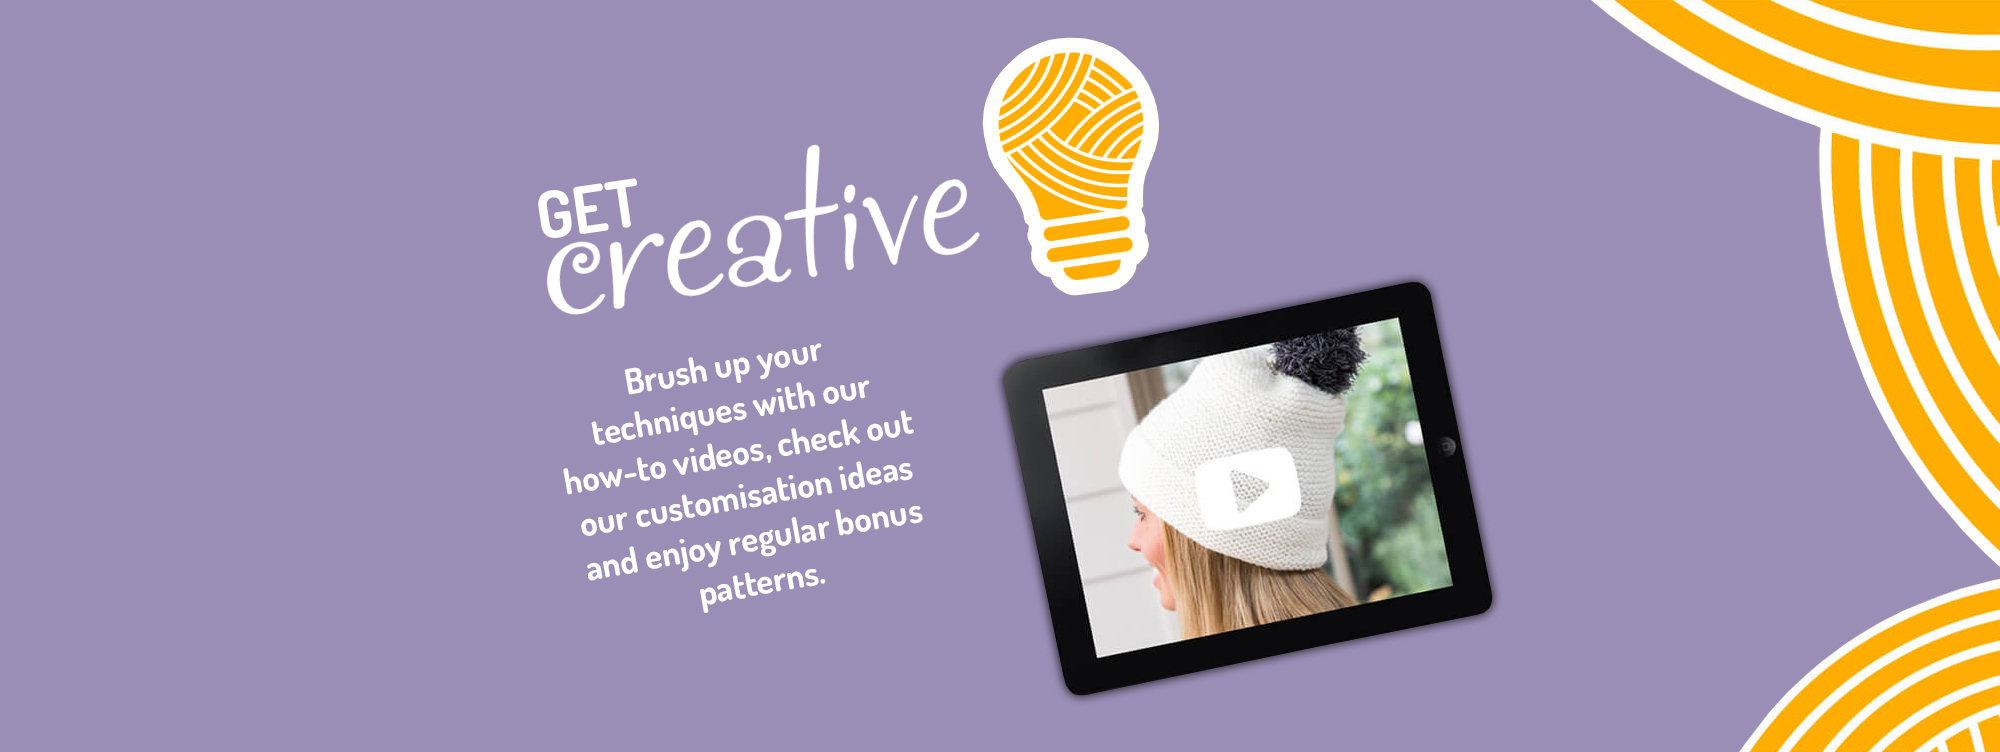 Get Creative - Brush up your techniques with our how-to video